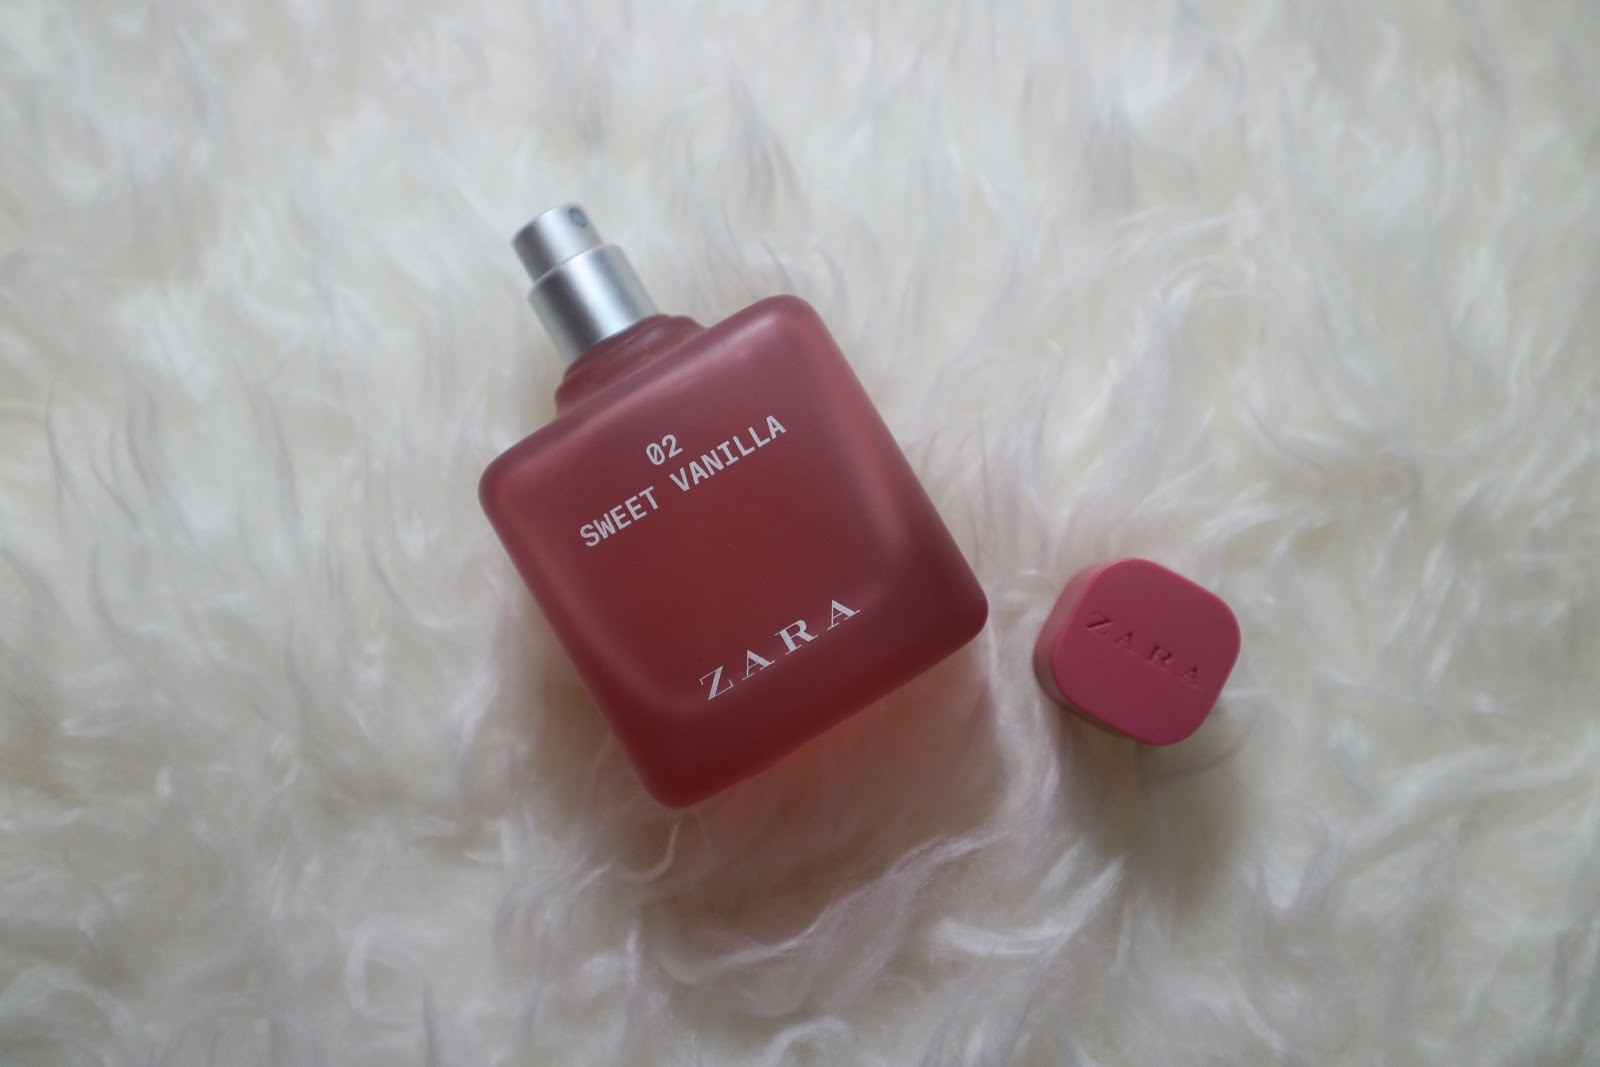 Review Zara 02 Sweet Vanilla Parfume English And Bahasa Voyage